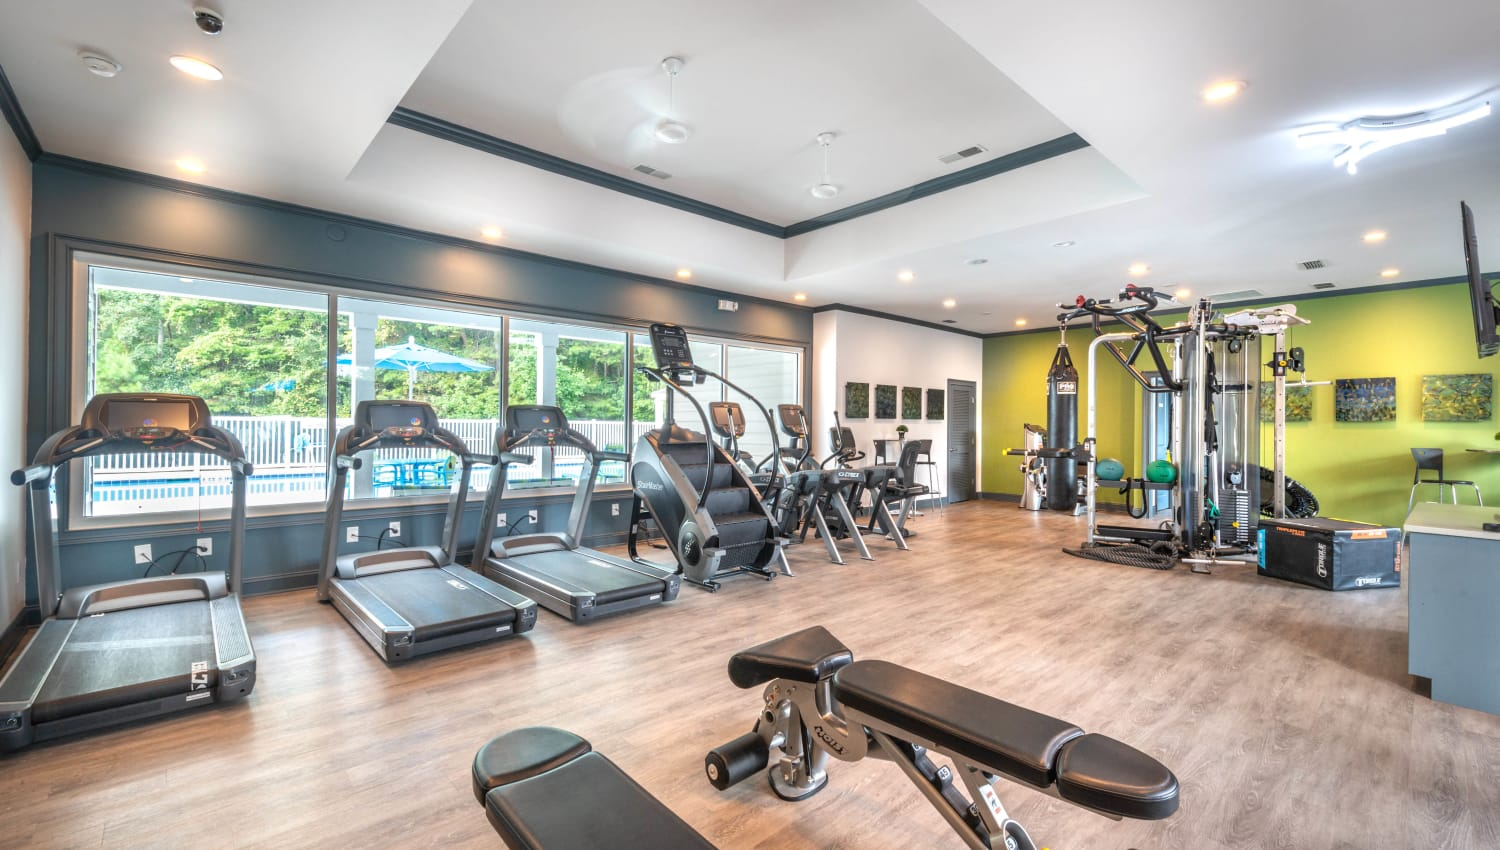 Treadmills and more in the onsite fitness center at Olympus Fenwick in Savannah, Georgia